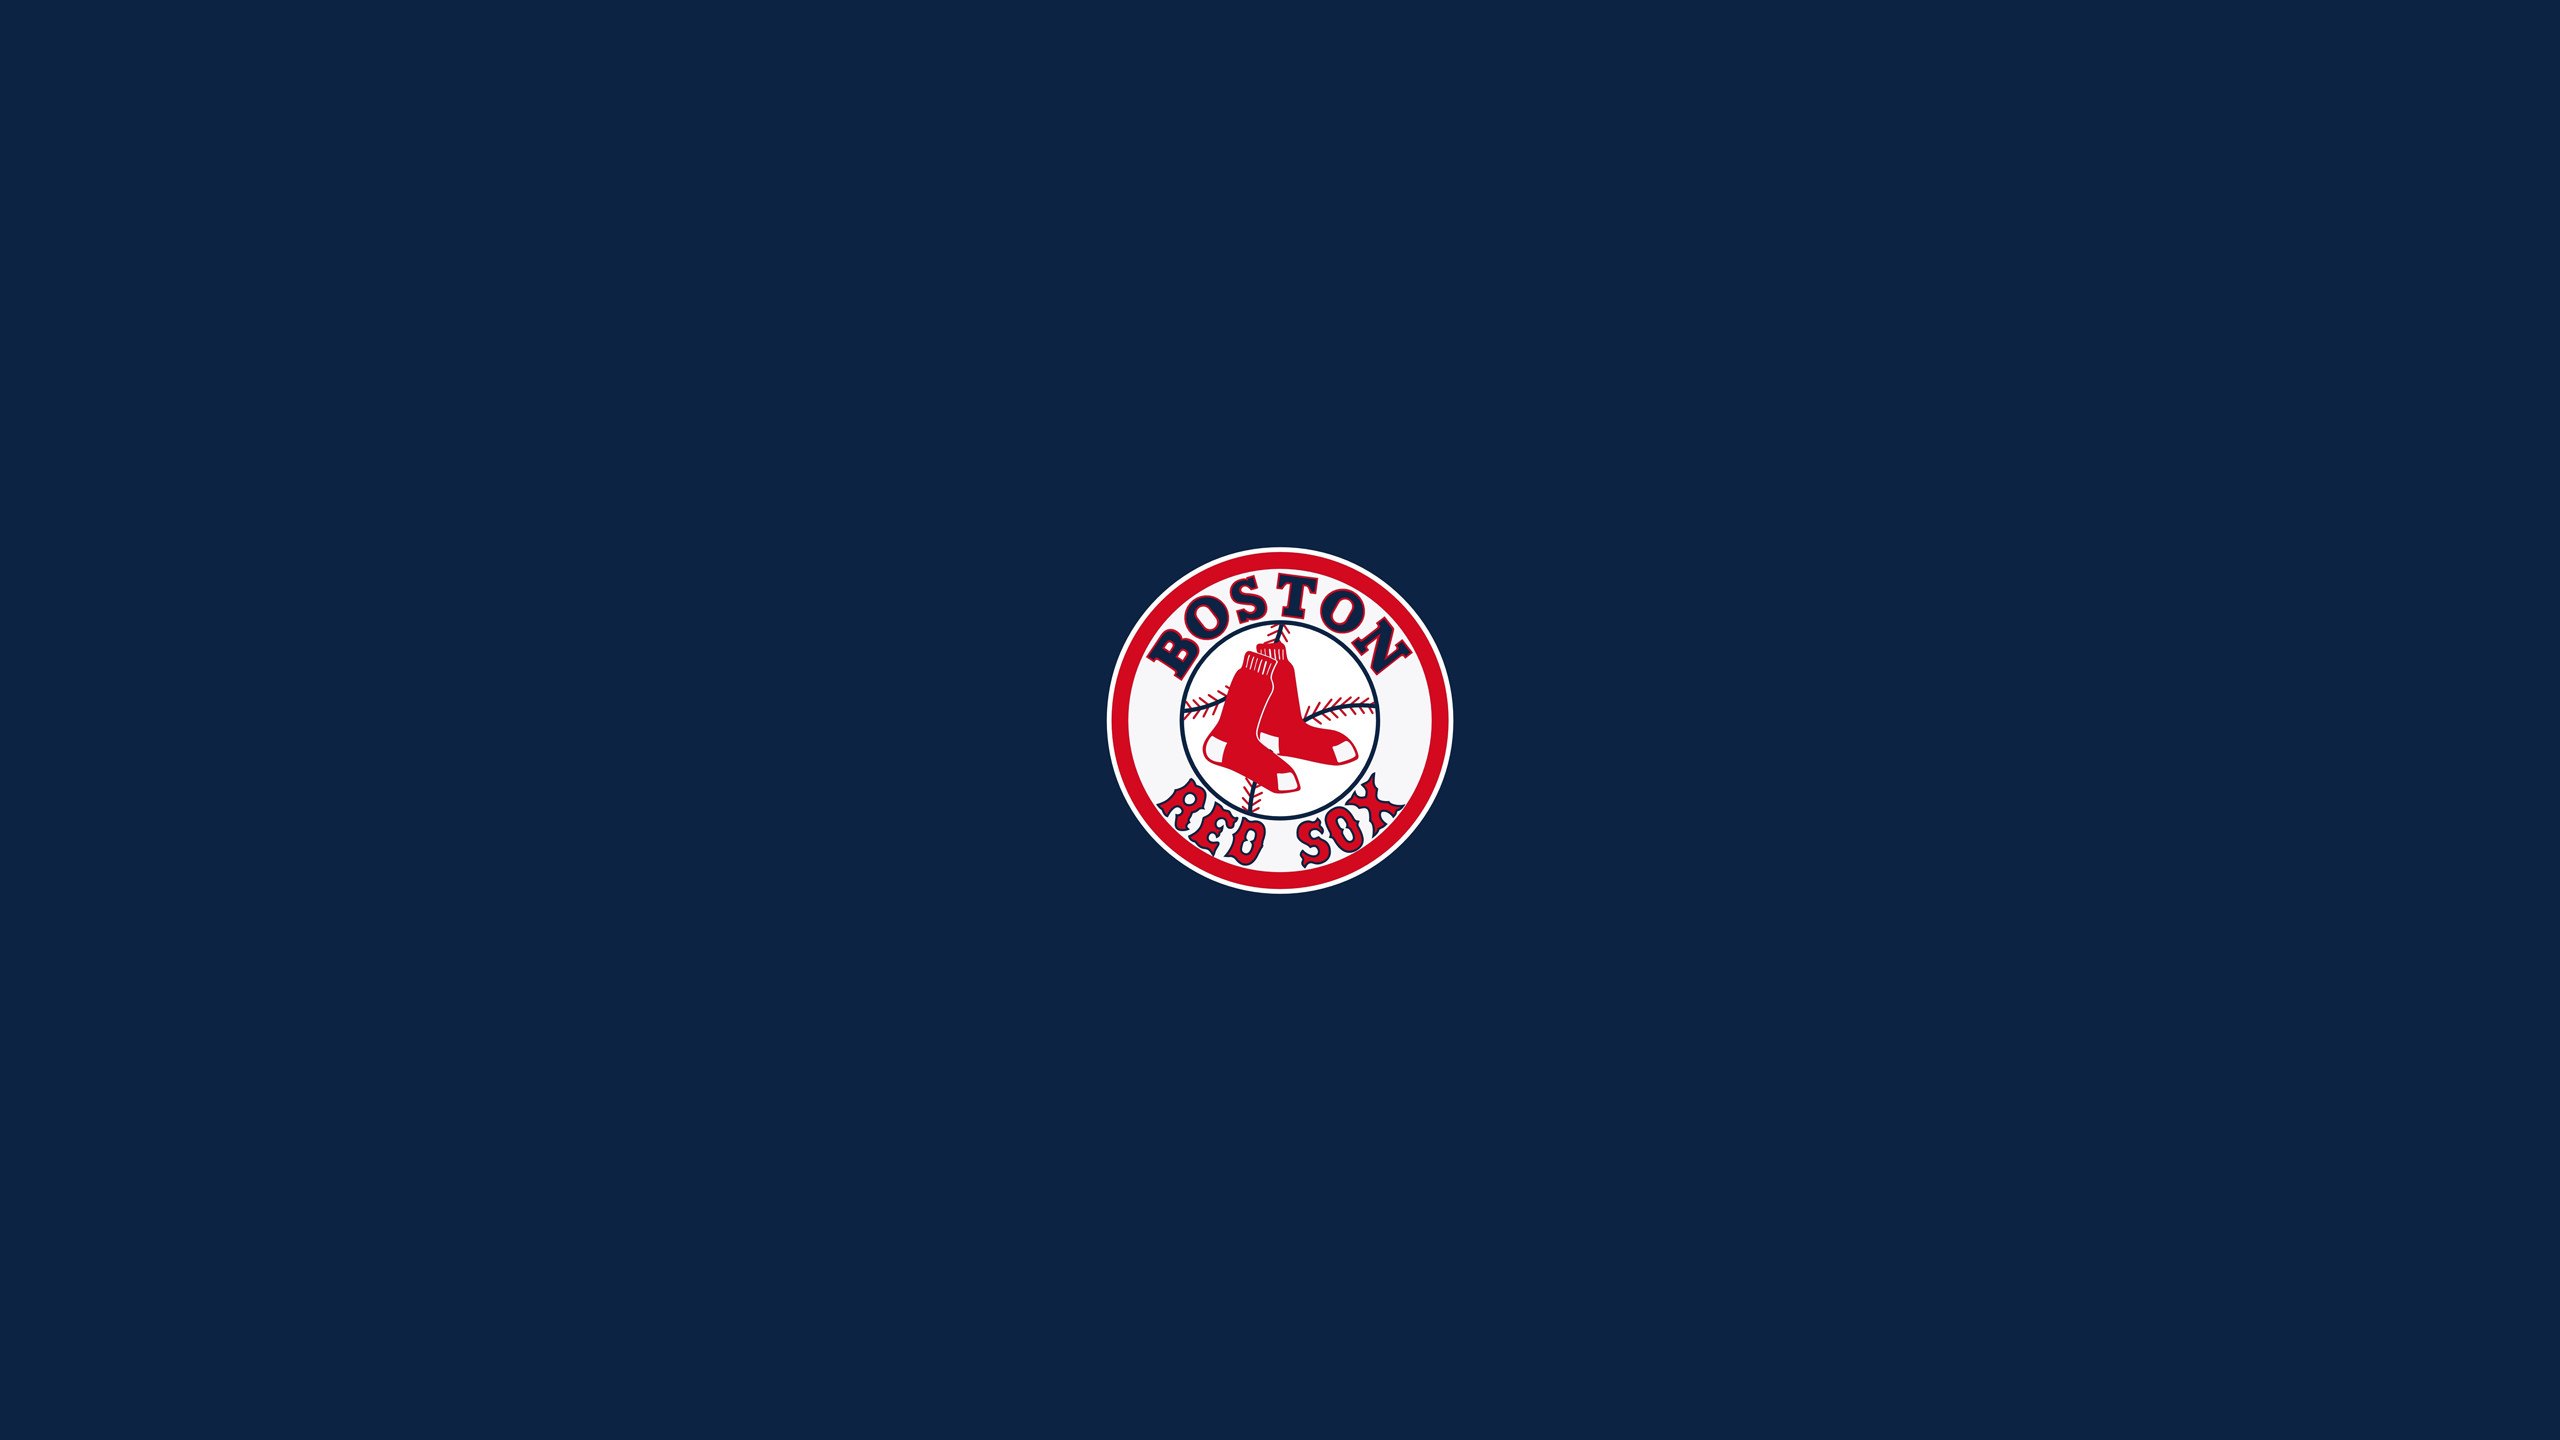 Boston Red Sox HD background | Boston Red Sox wallpapers